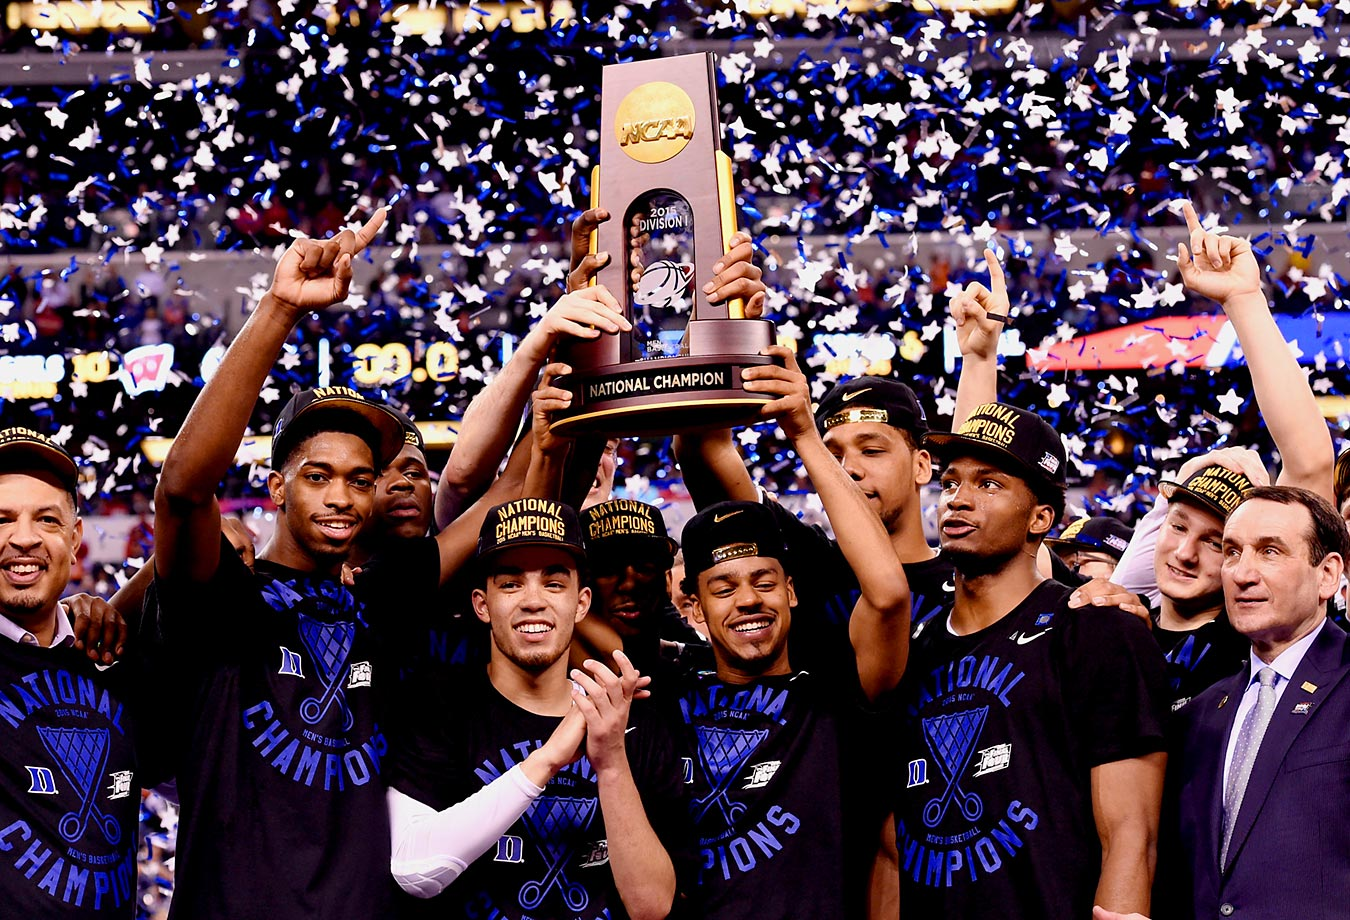 Behind a trio of freshman, Duke won its fifth championship in program history (all under coach Mike Krzyzewski, defeating Wisconsin 68-63 in the title game. Youngsters Jahlil Okafor, Tyus Jones and Justise Winslow carried the Blue Devils all season before declaring for the NBA Draft, and fellow-freshman Grayson Allen stepped up for 16 points off the bench against the Badgers. The championship moved Krzyzewski into sole possession of second place all-time, behind only John Wooden and his 10 titles.                                          (Text credit: Alex Putterman/SI.com)